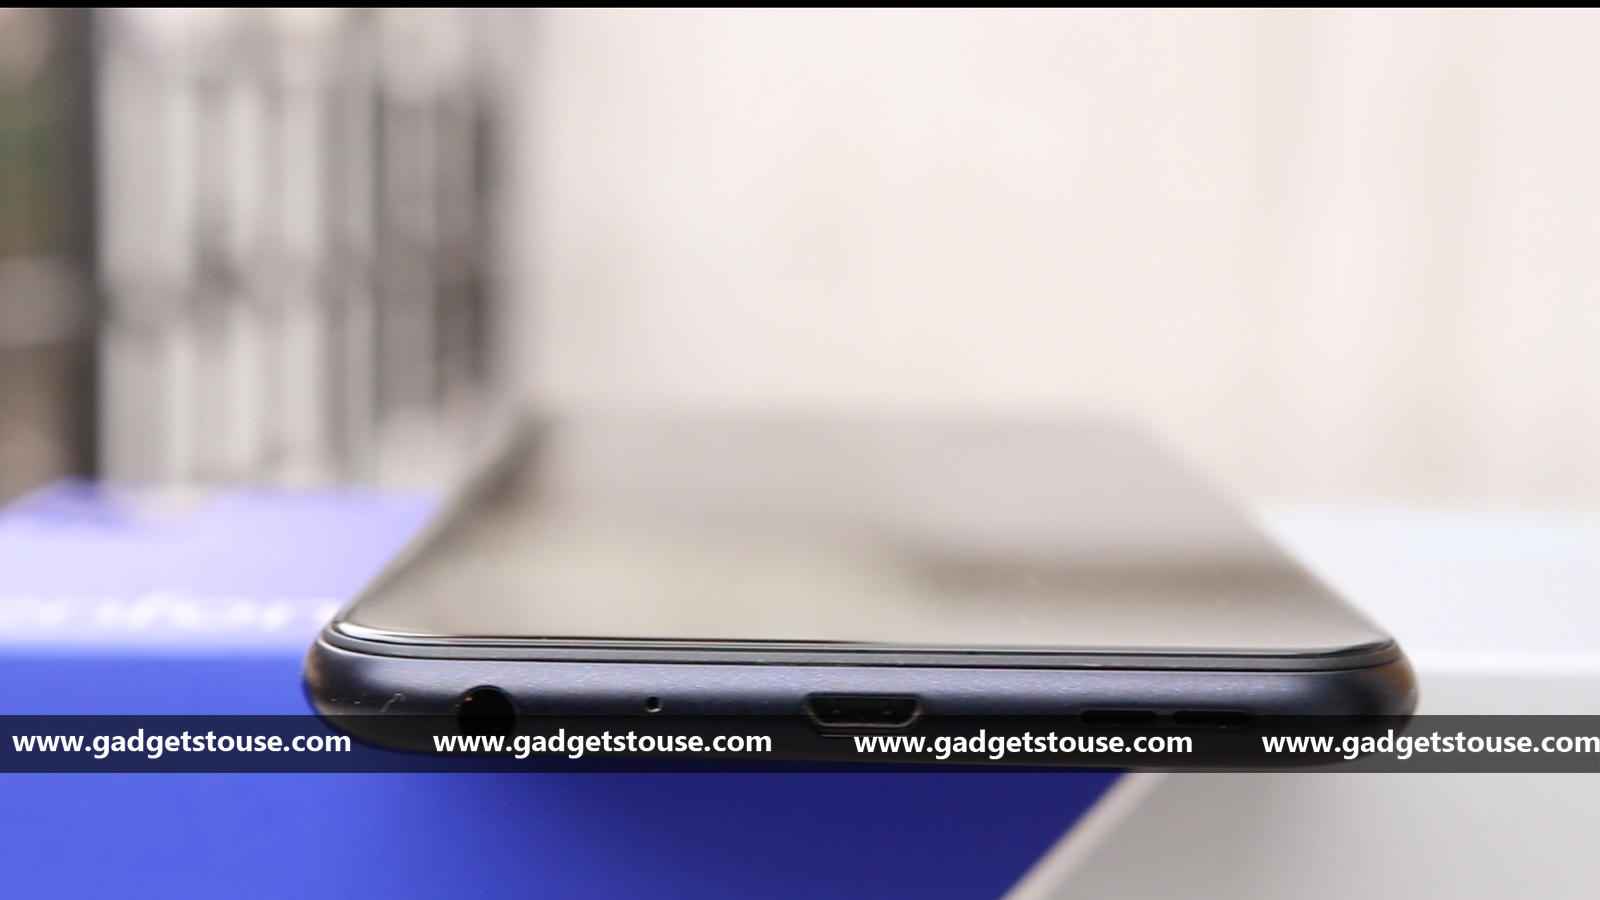 Asus Zenfone Max Pro M1 Reasons To Buy And Not Ram 3gb The Usb Type C Port Has Become Pretty Much A Standard These Days So It Would Be Great See Zenofone Sporting